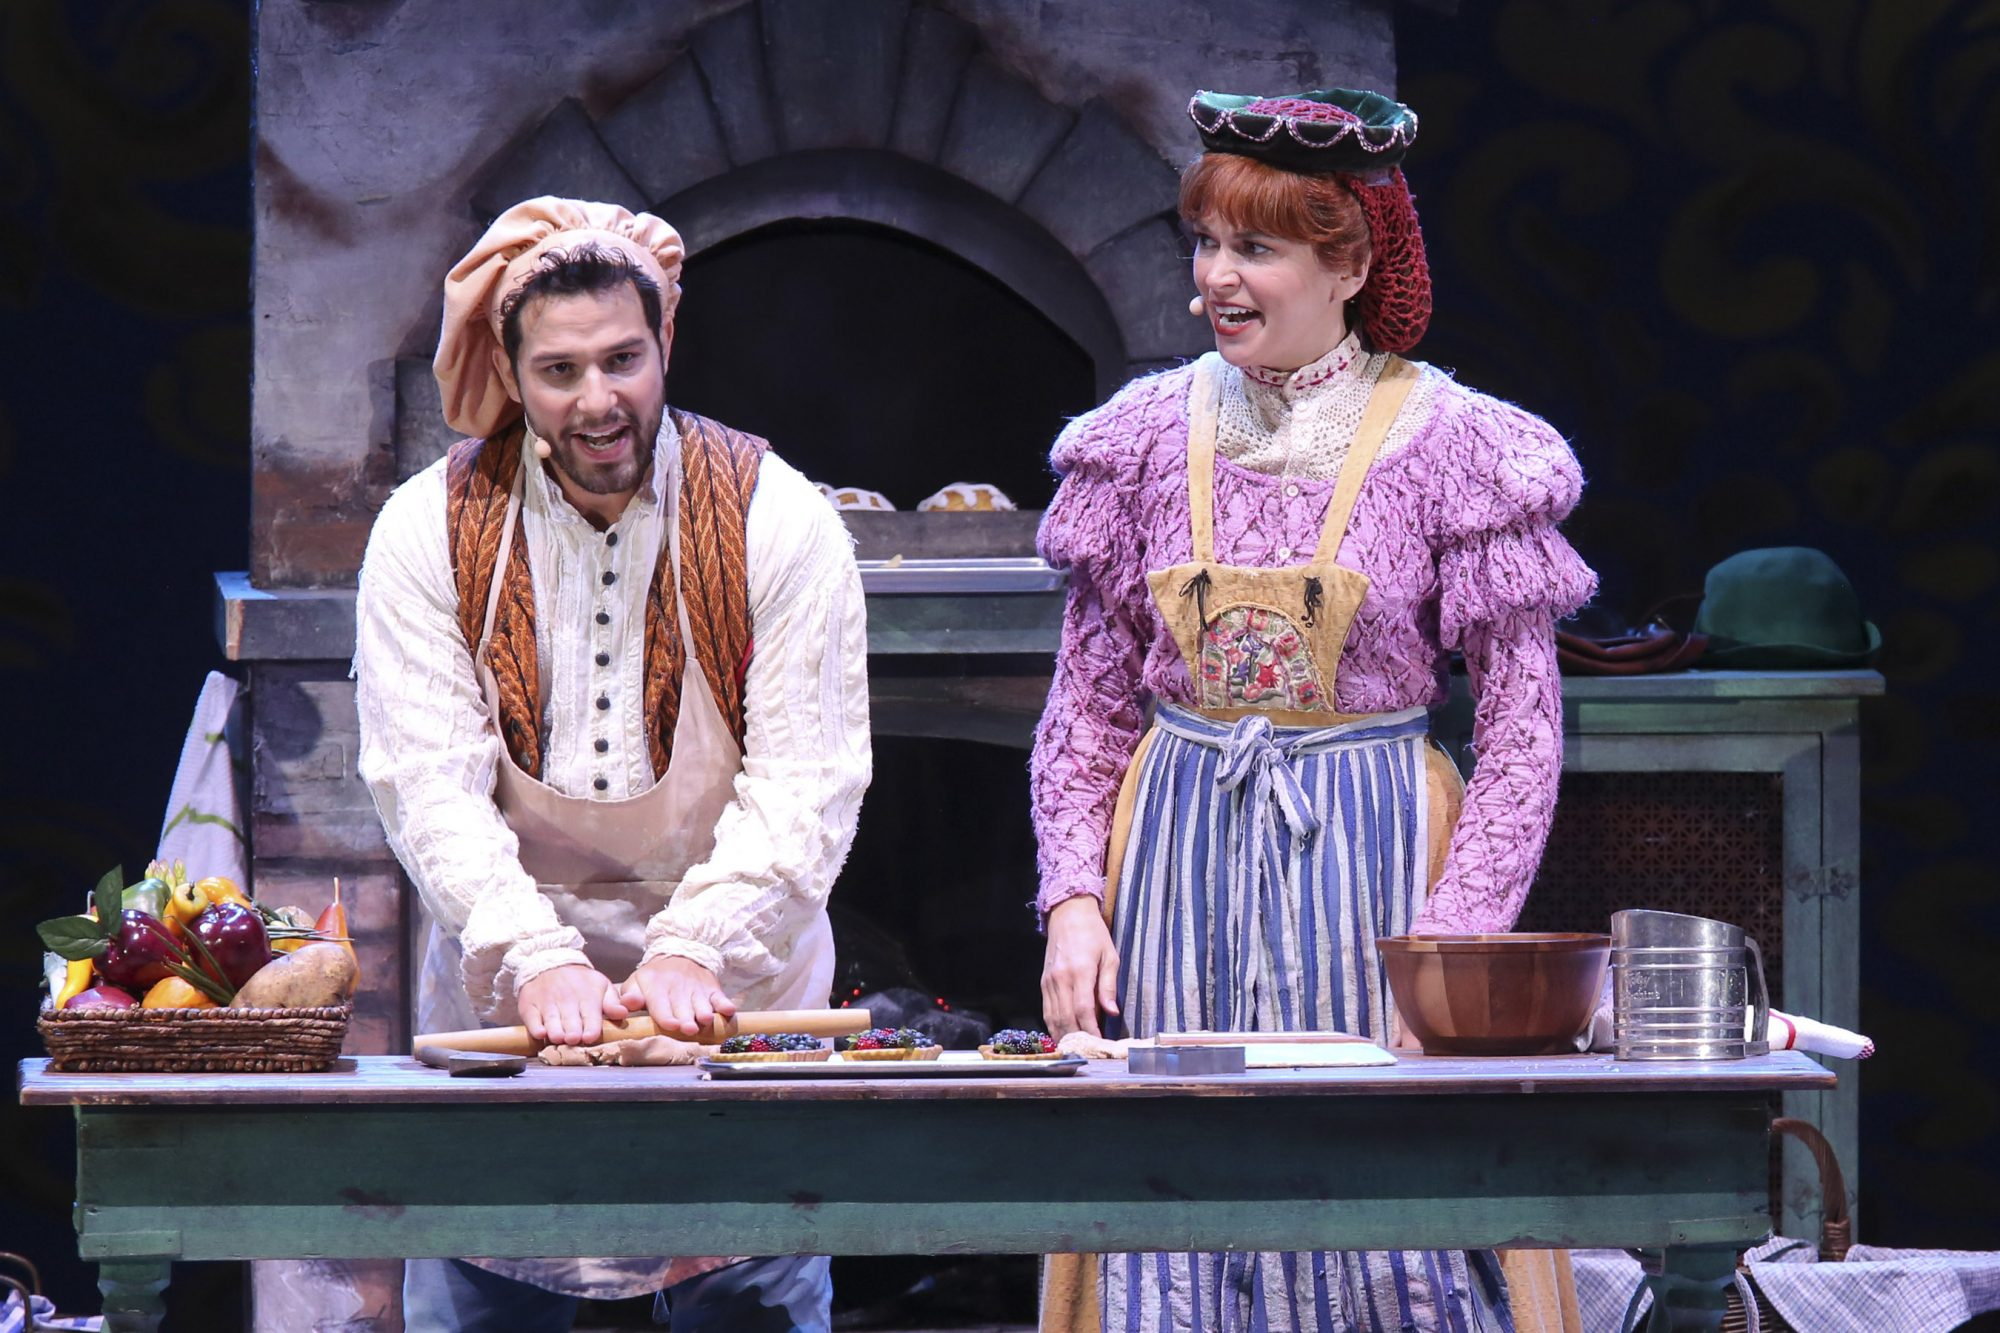 Hollywood Bowl Presents Into The Woods 2019 -- Pictured: Skylar Astin as The Baker, Sutton Foster as The Baker's Wife Photos by Craig T. Mathew and Greg Grudt/Mathew Imaging If these photos will be used on Social Media, please be sure to tag the following: @mathewimaging